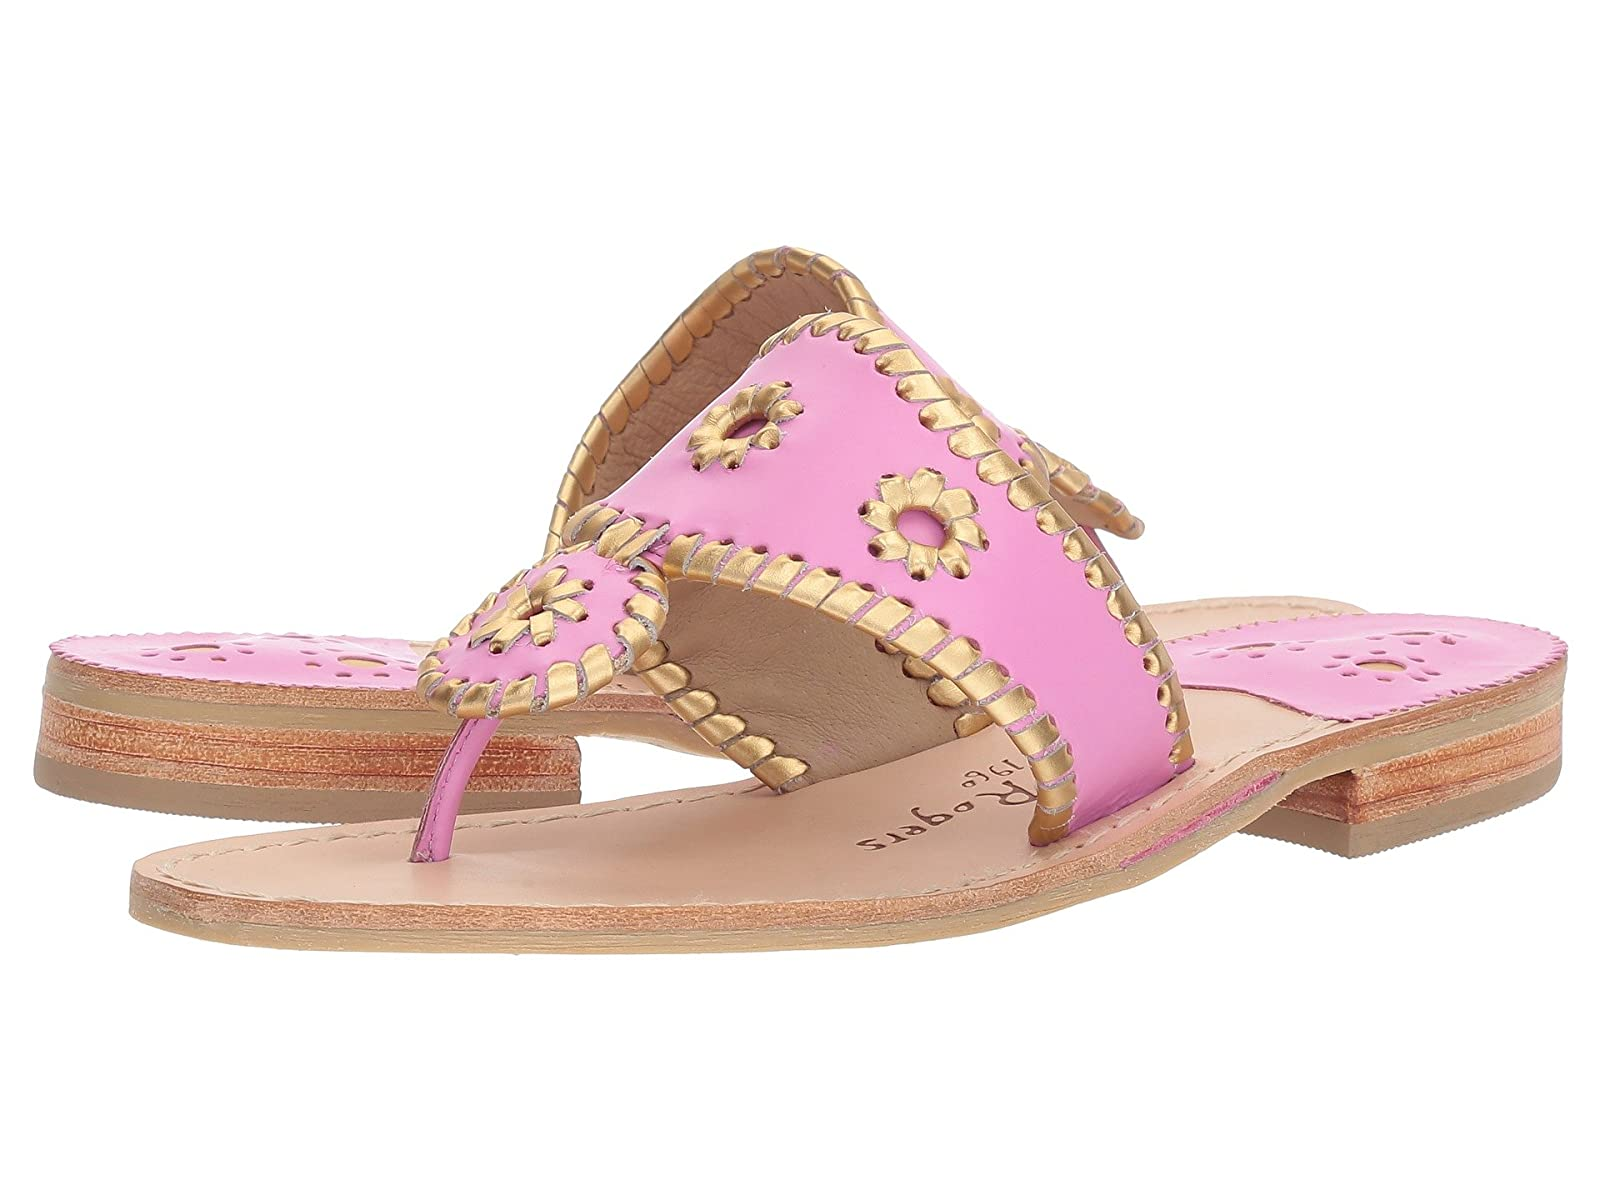 Jack Rogers HollisCheap and distinctive eye-catching shoes